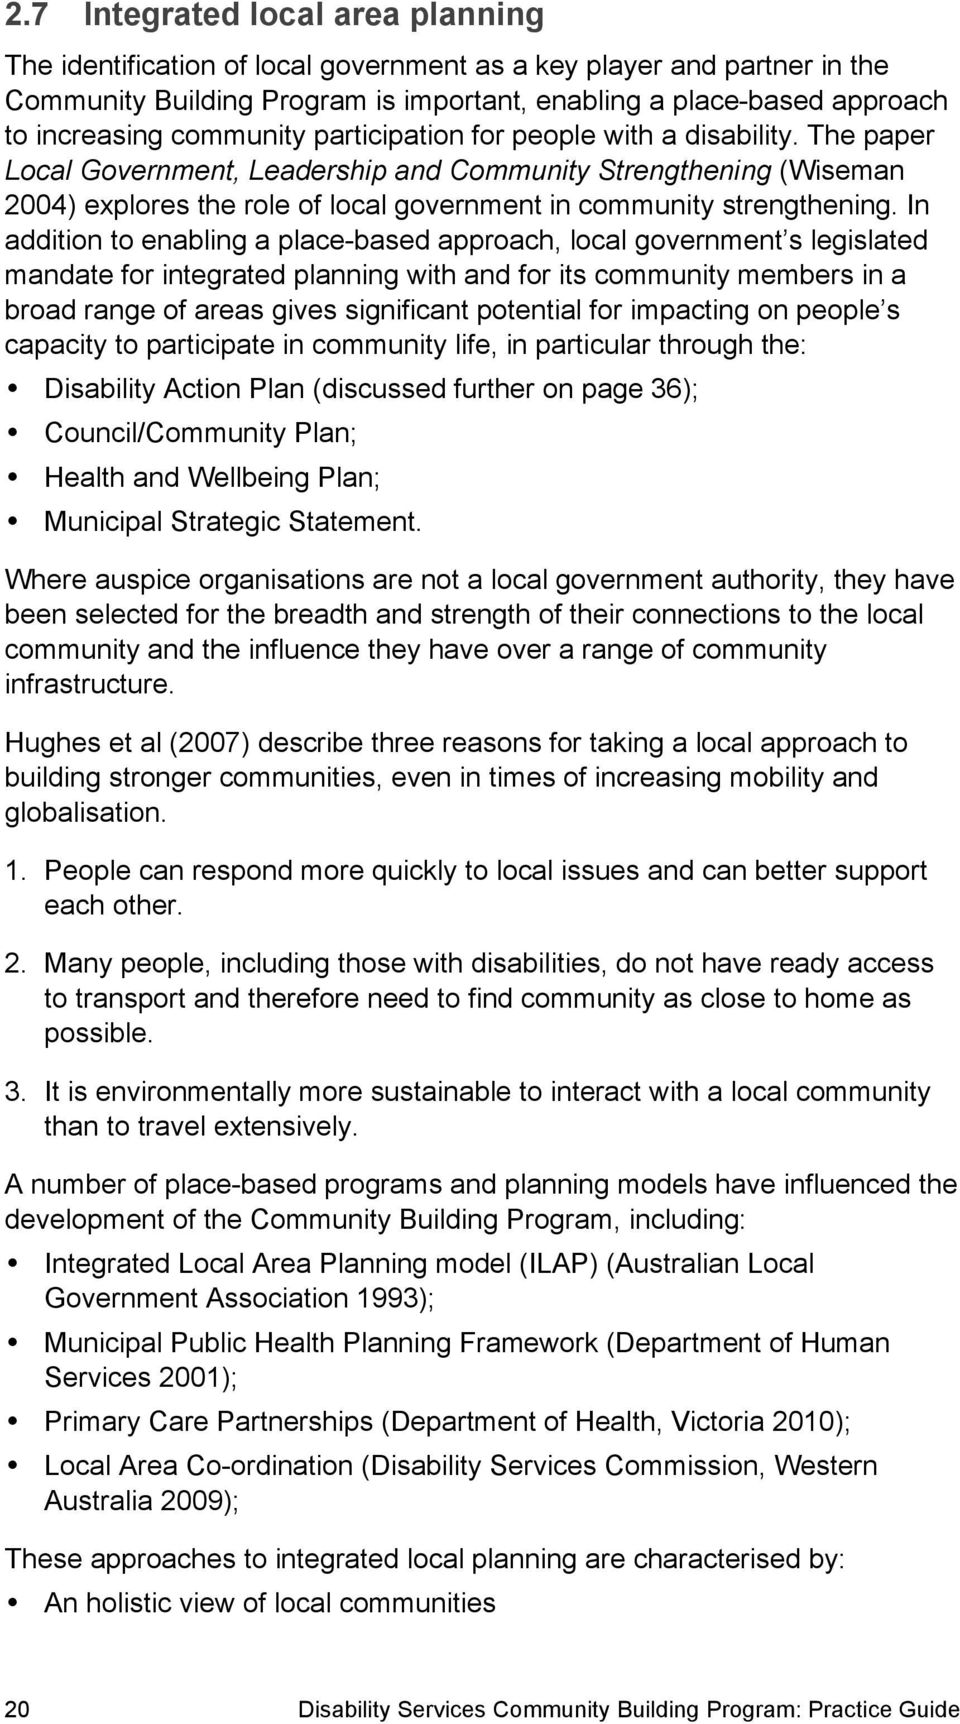 The paper Local Government, Leadership and Community Strengthening (Wiseman 2004) explores the role of local government in community strengthening.